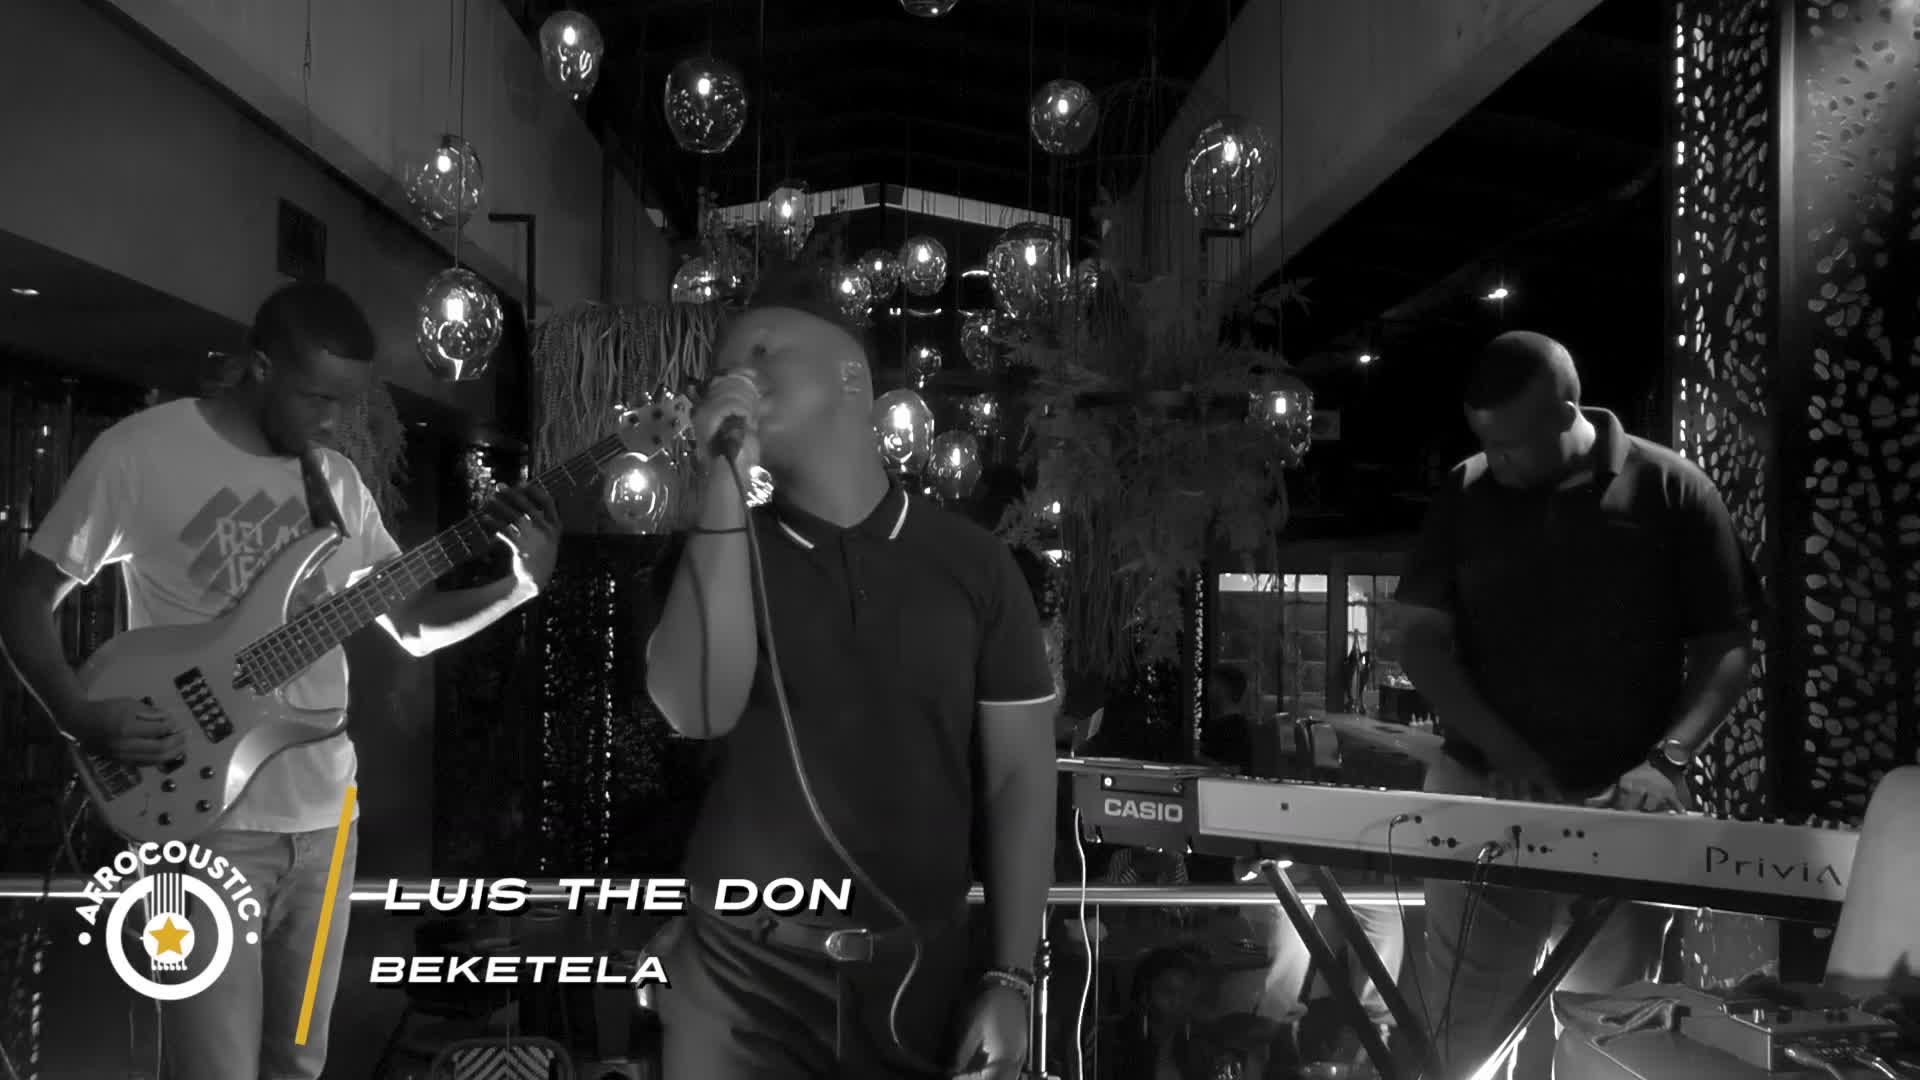 Afrocoustic - Luis The Don - Beketela